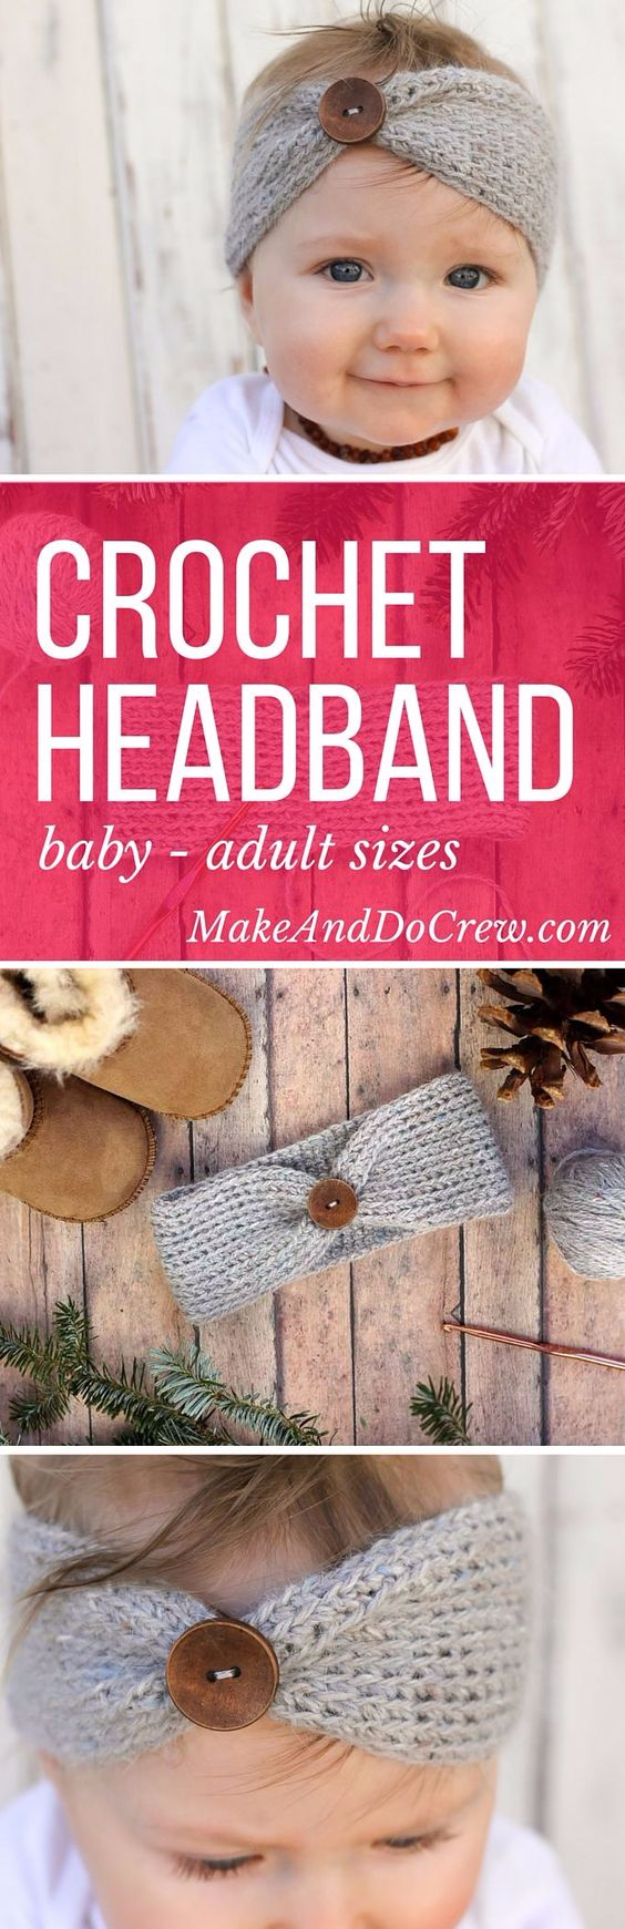 DIY Gifts for Babies - Crochet Baby Headband - Best DIY Gift Ideas for Baby Boys and Girls - Creative Projects to Sew, Make and Sell, Gift Baskets, Diaper Cakes and Presents for Baby Showers and New Parents. Cool Christmas and Birthday Ideas #diy #babygifts #diygifts #baby